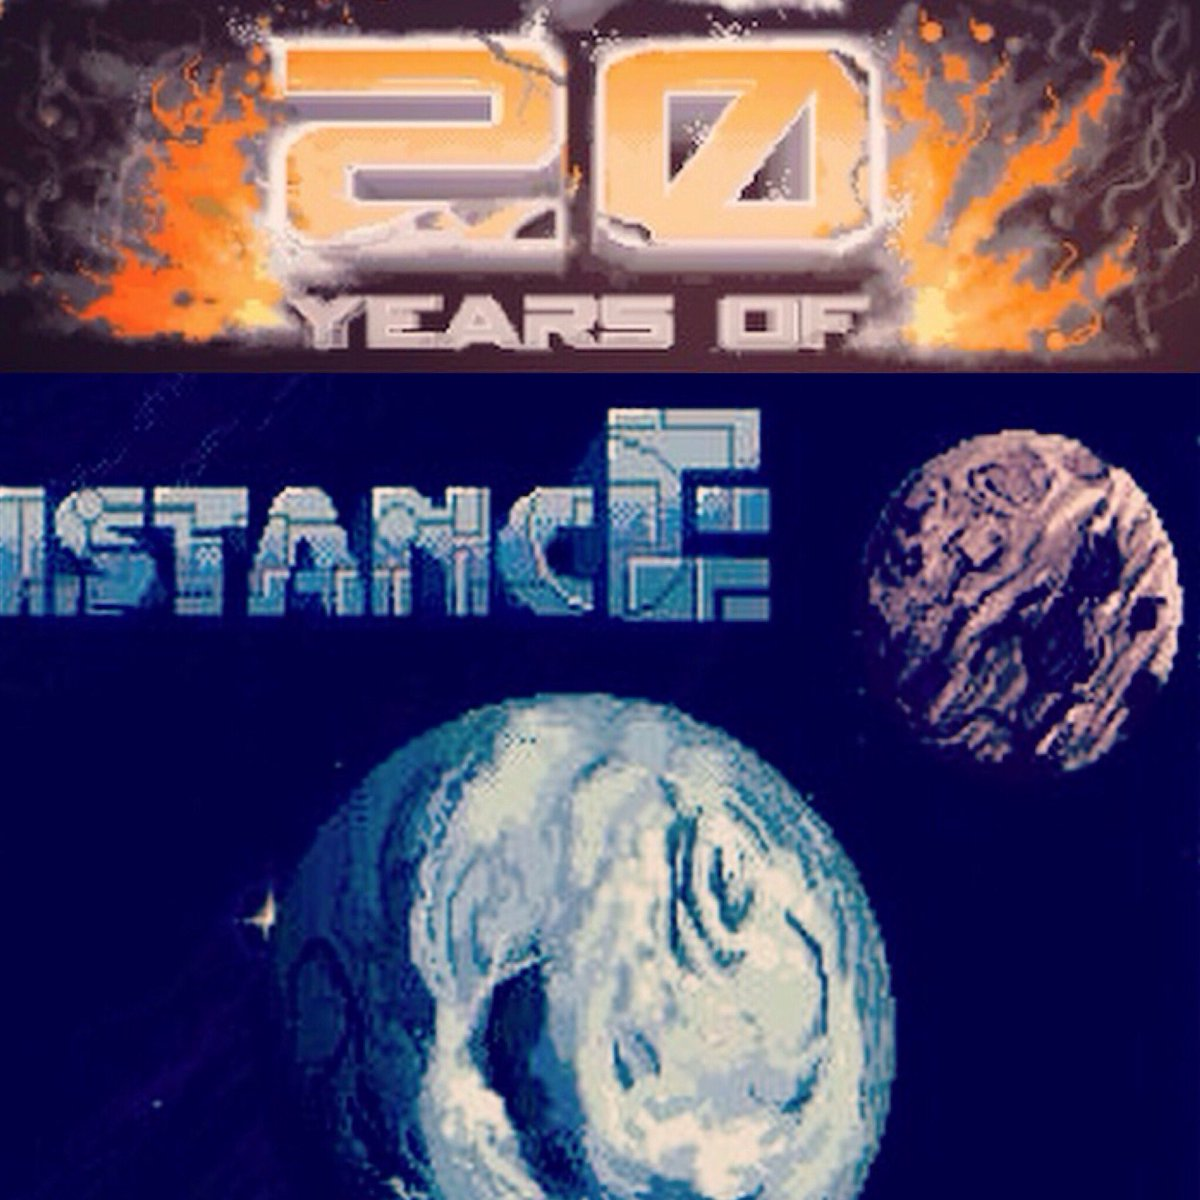 More than 20 years of releases, more than 20 years of @RESISTANCE_NO #demoscene #sega #amiga #neogeo #gameboy  http://www. pouet.net/groups.php?whi ch=1572 &nbsp; … <br>http://pic.twitter.com/43vxBHJn94